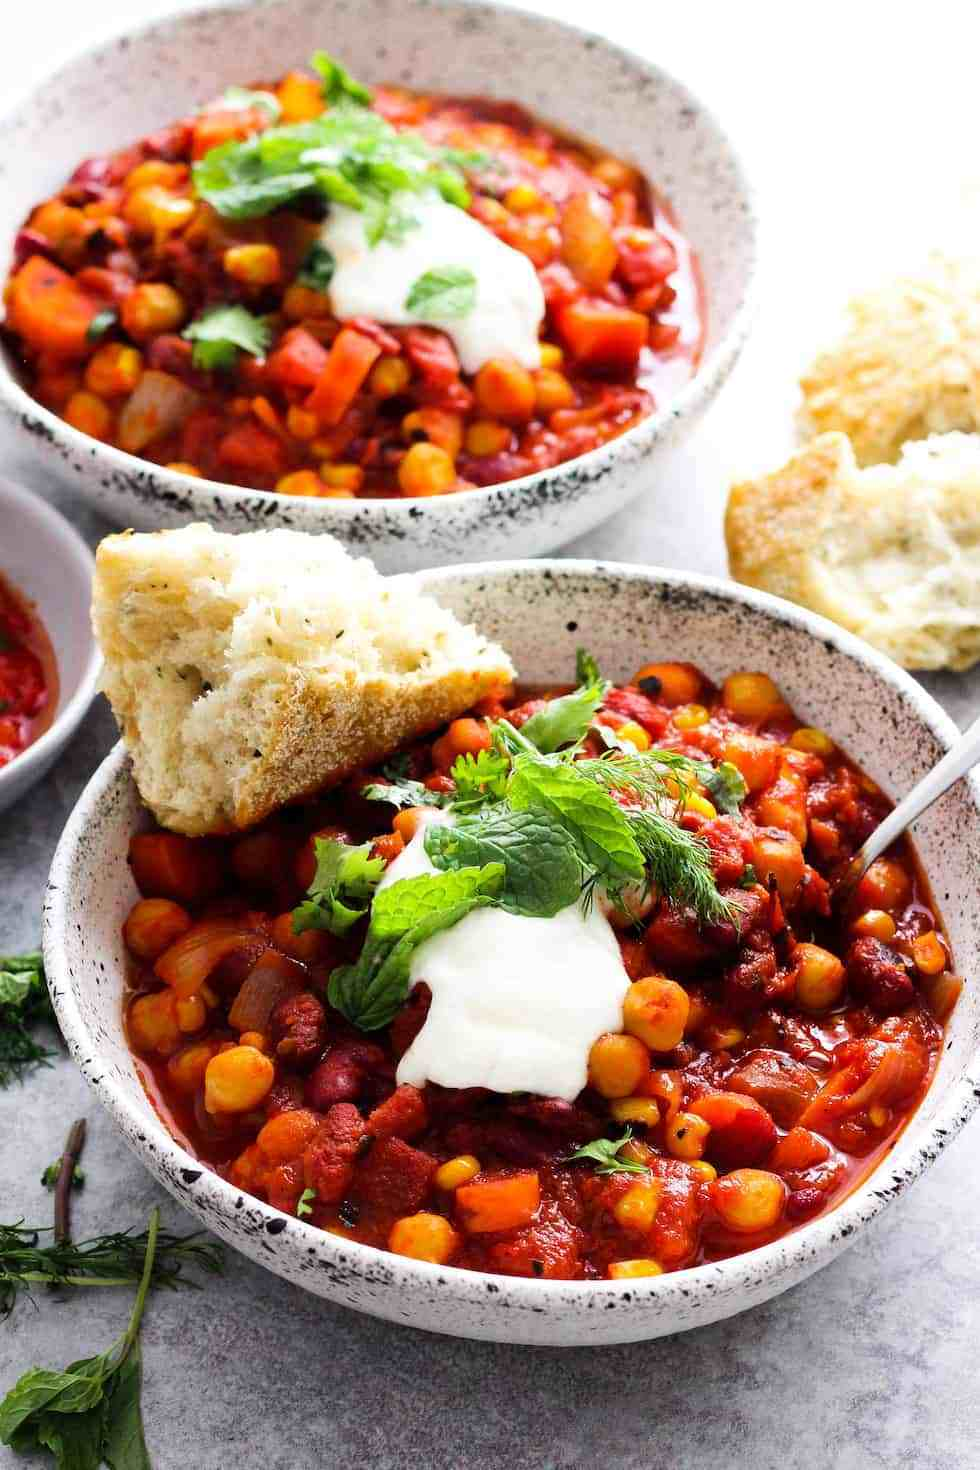 Bowl of harissa chili with bread on the side as a meal idea that uses pantry ingredients.